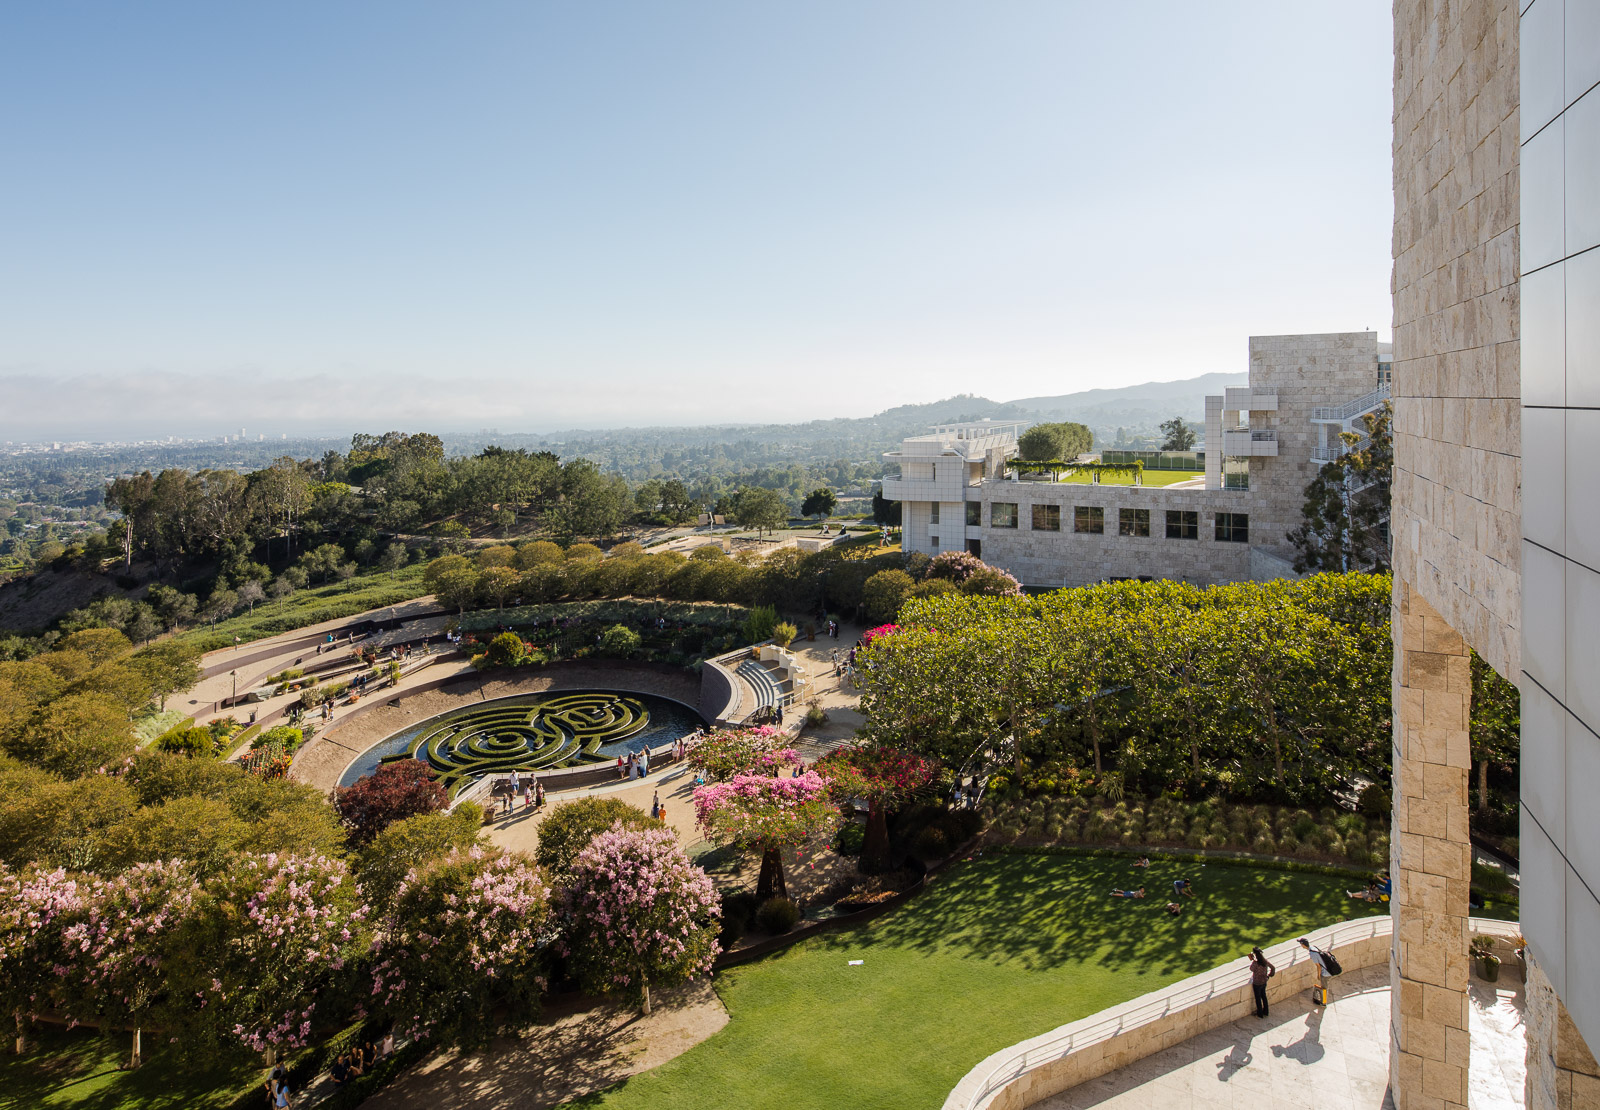 Beautiful landscape garden at the Getty Center